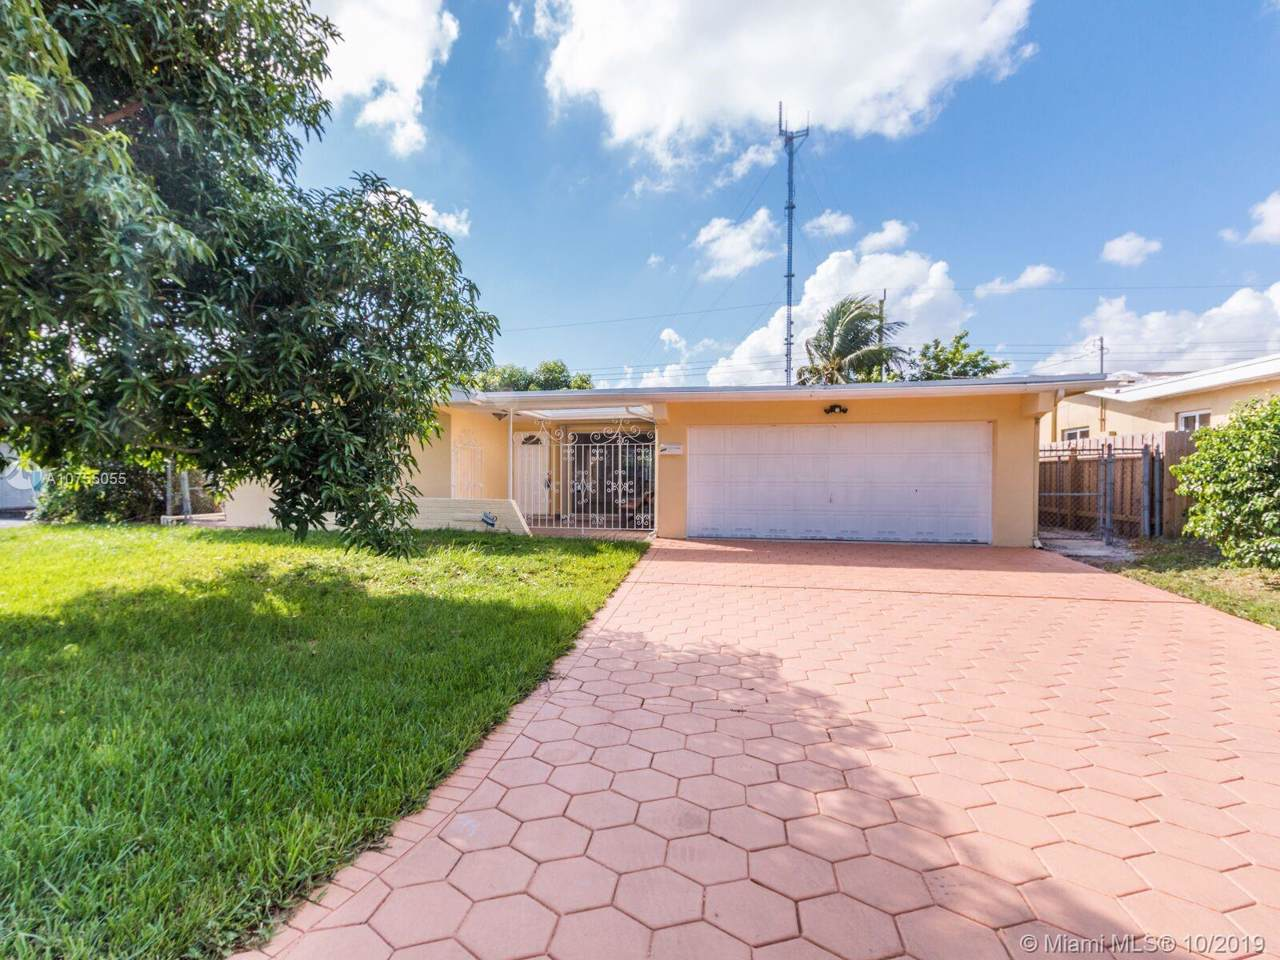 6744 Pansy Dr - Photo 1